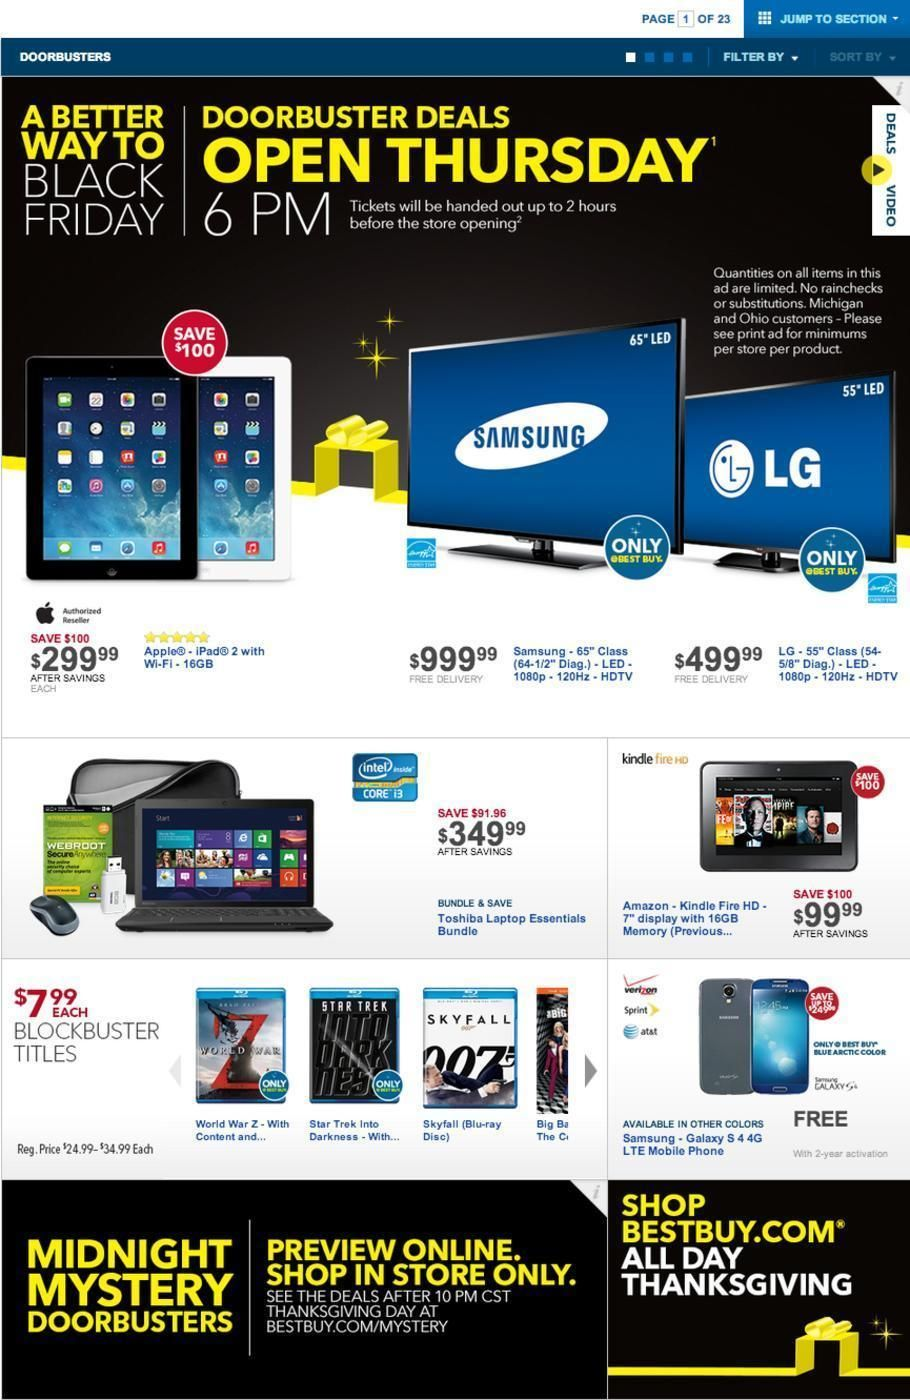 Best Buy Black Friday 2015 Ad Black Friday Ads Cool Things To Buy Black Friday Inspiration